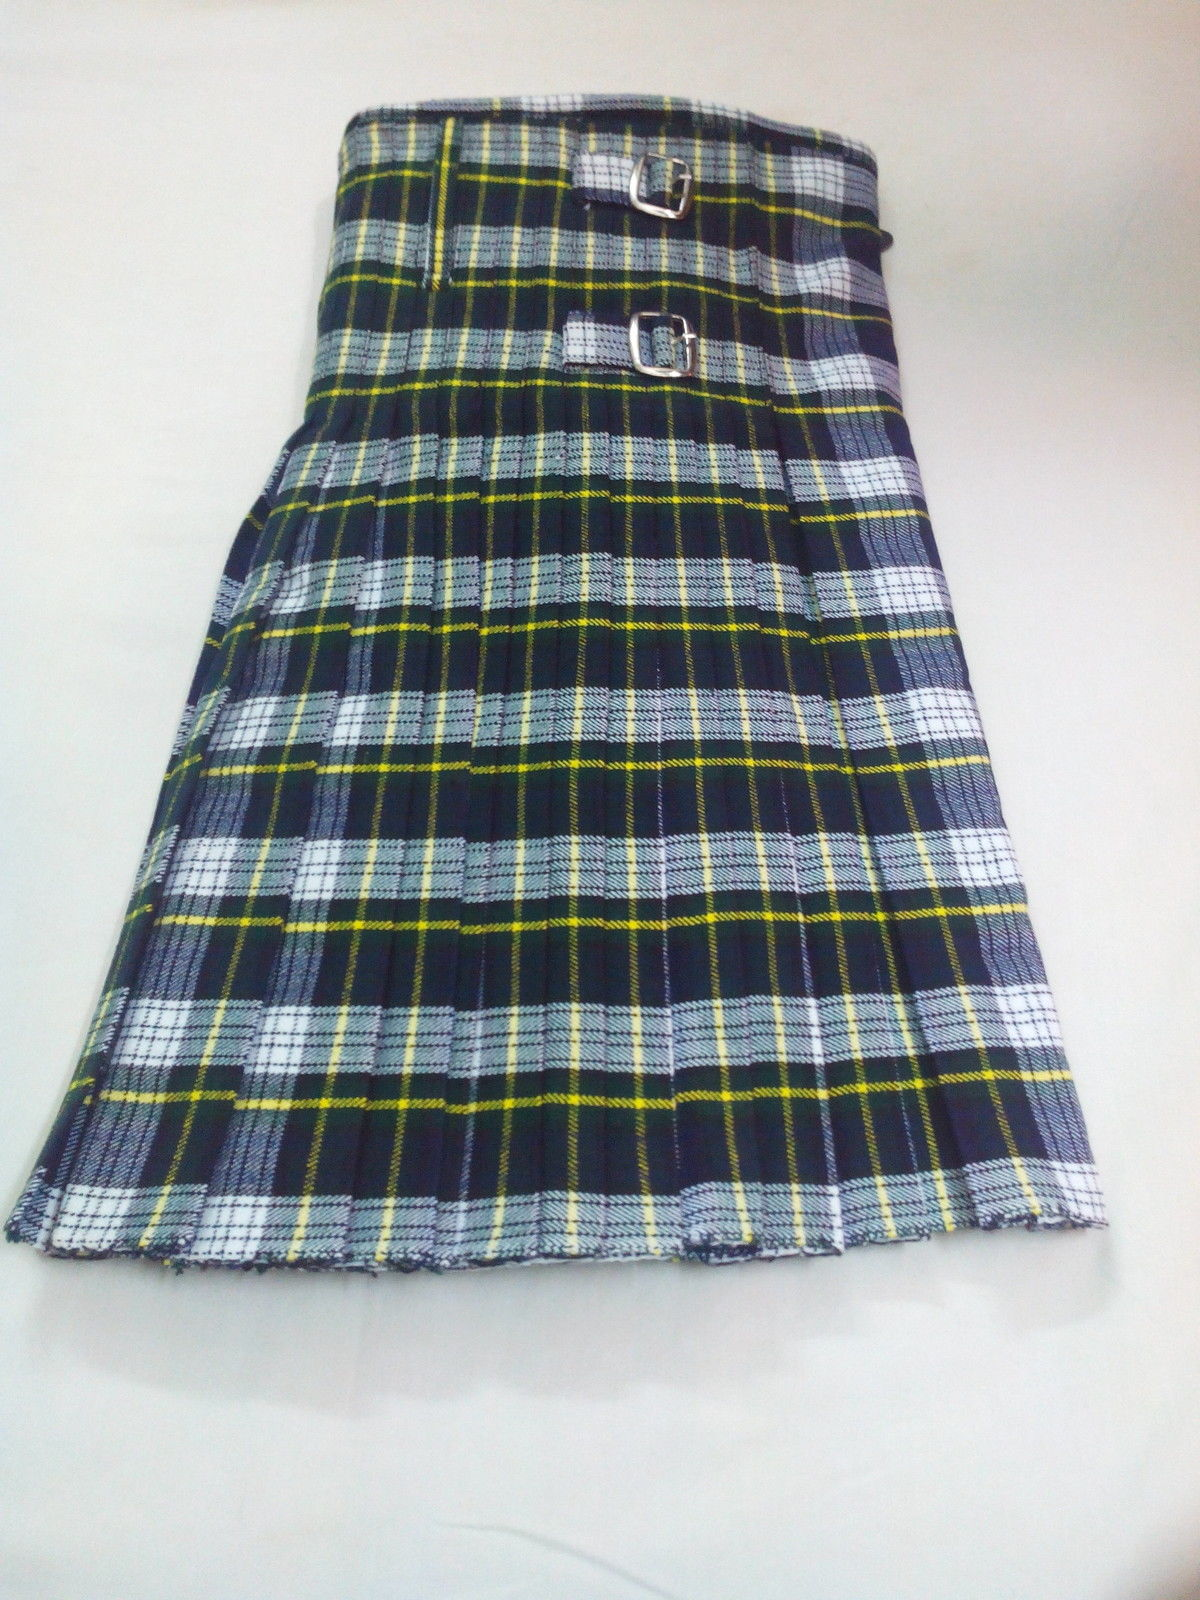 8-Yards-Scottish-Kilt-Dress-Gordon-front (1)